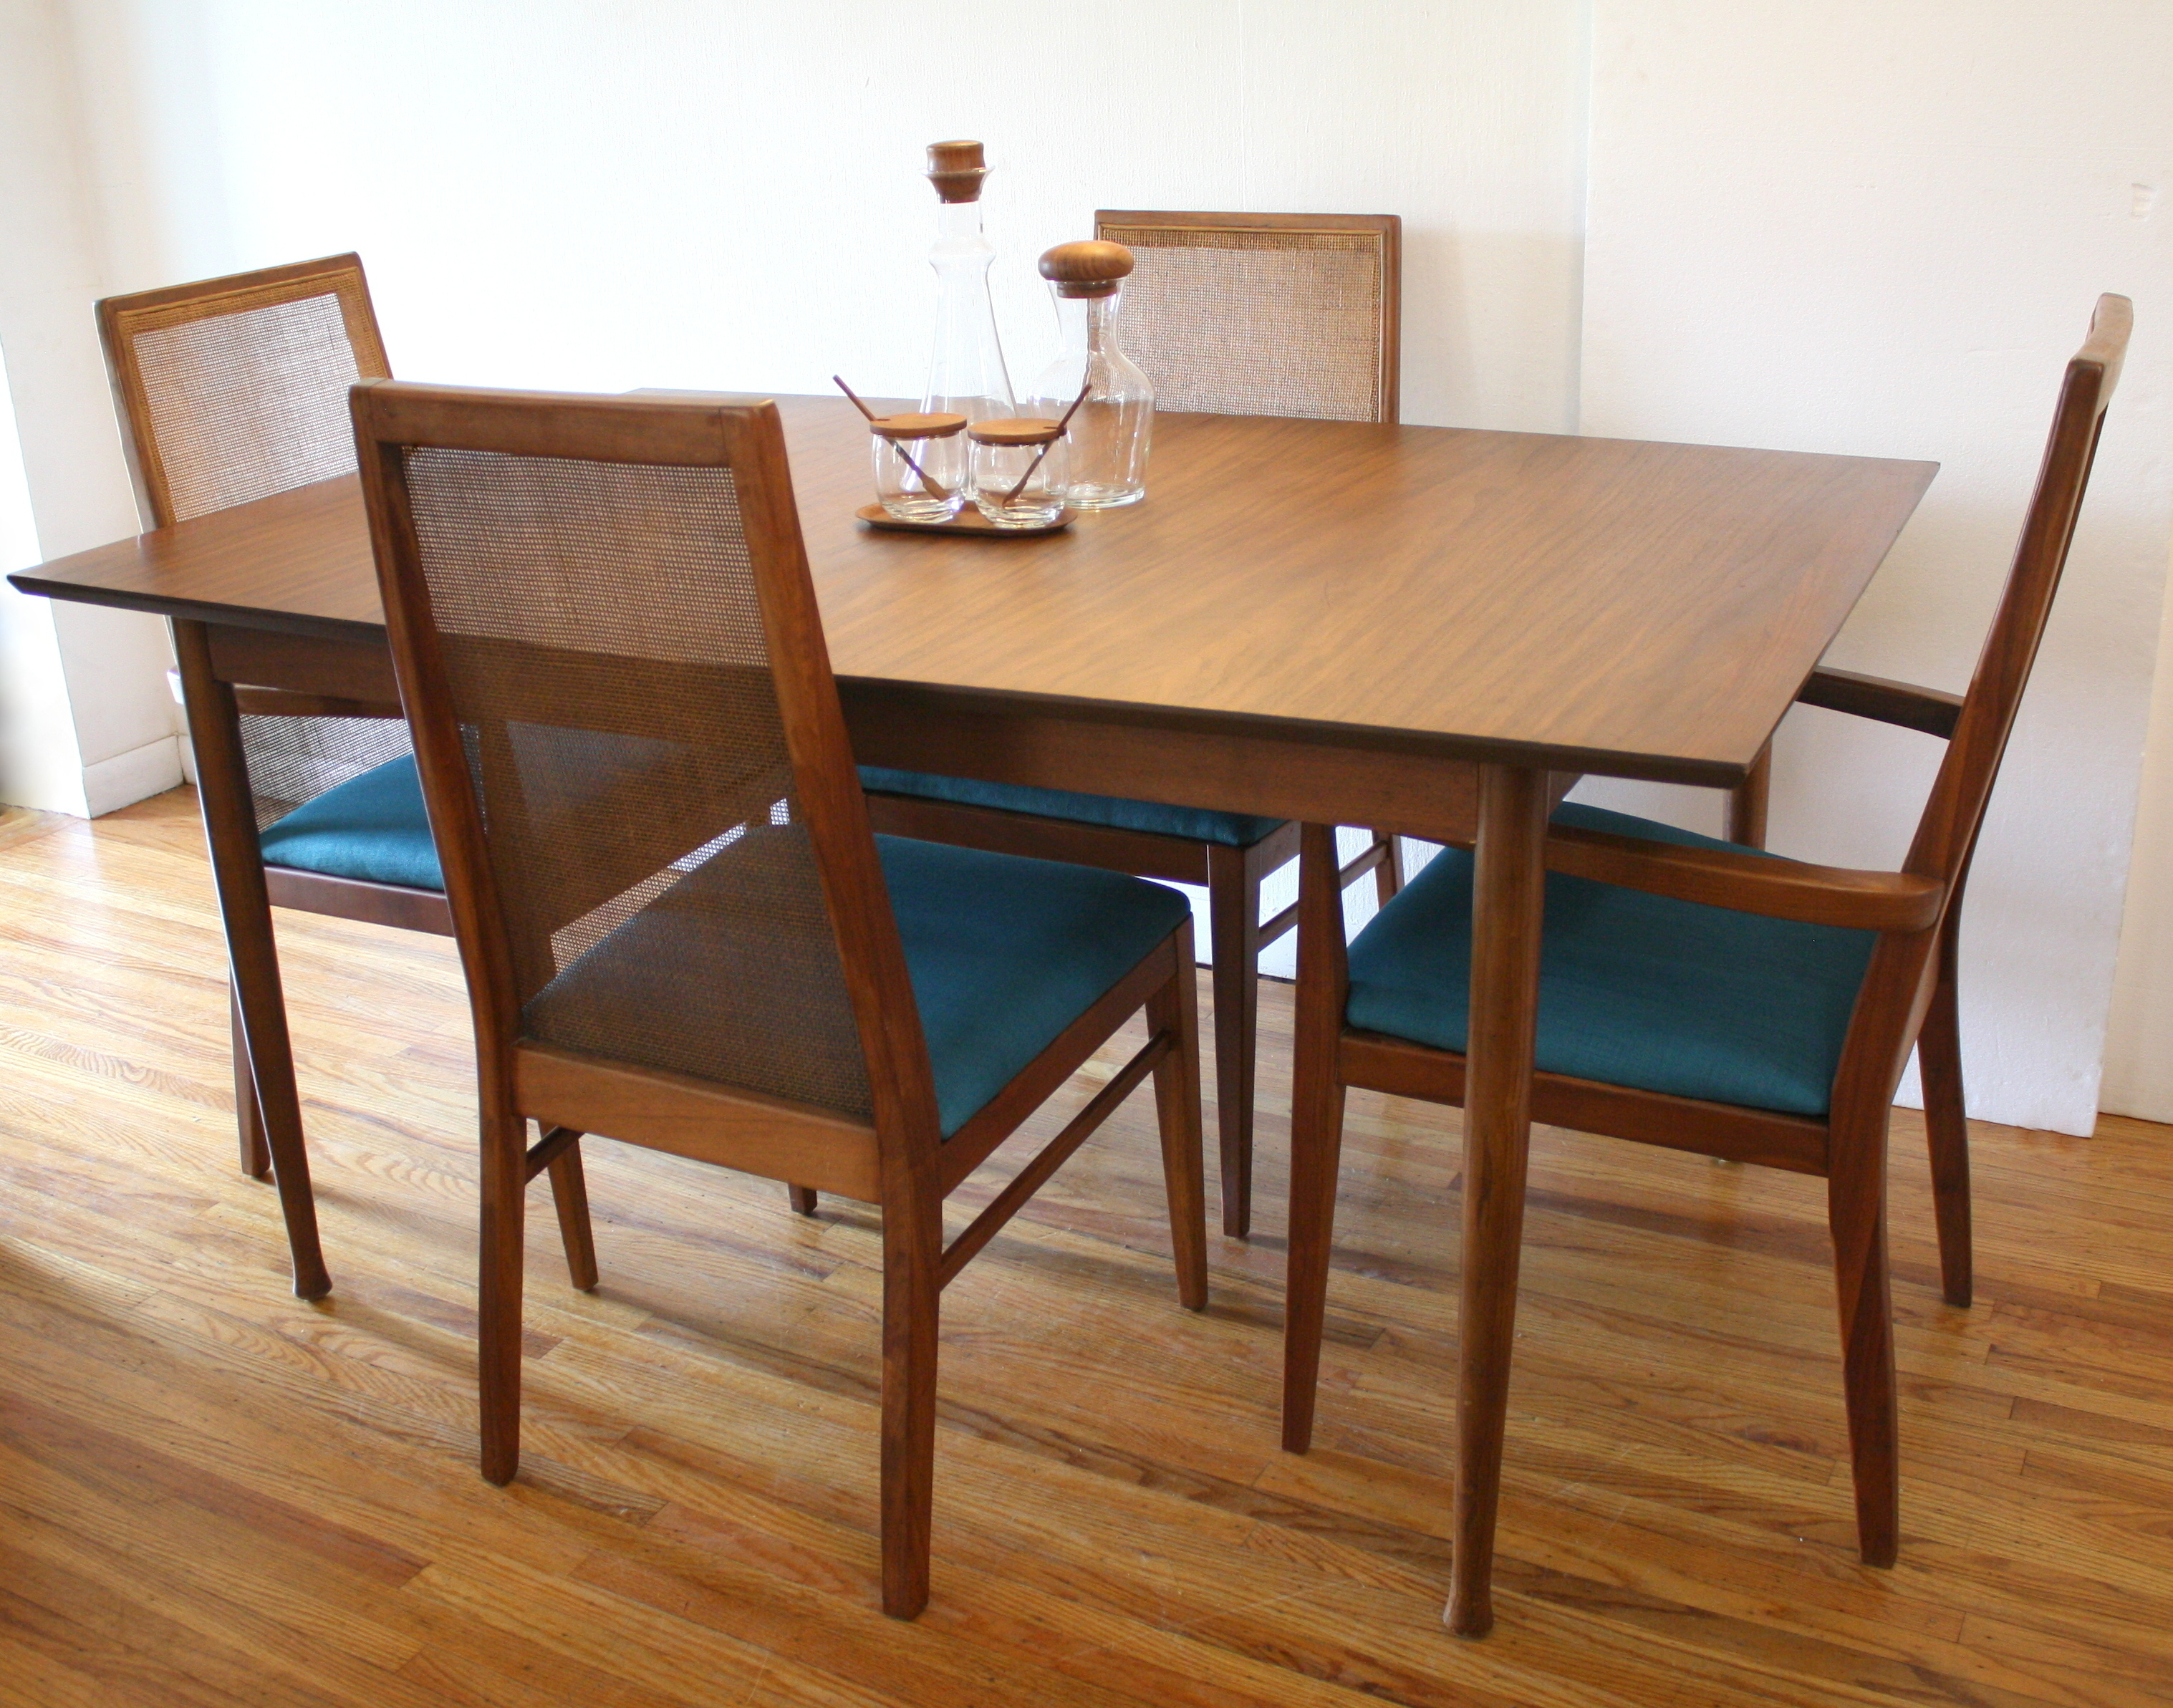 Modern Dining Table And Chairs Mid Century Modern Dining Table With Hidden Leaf And Set